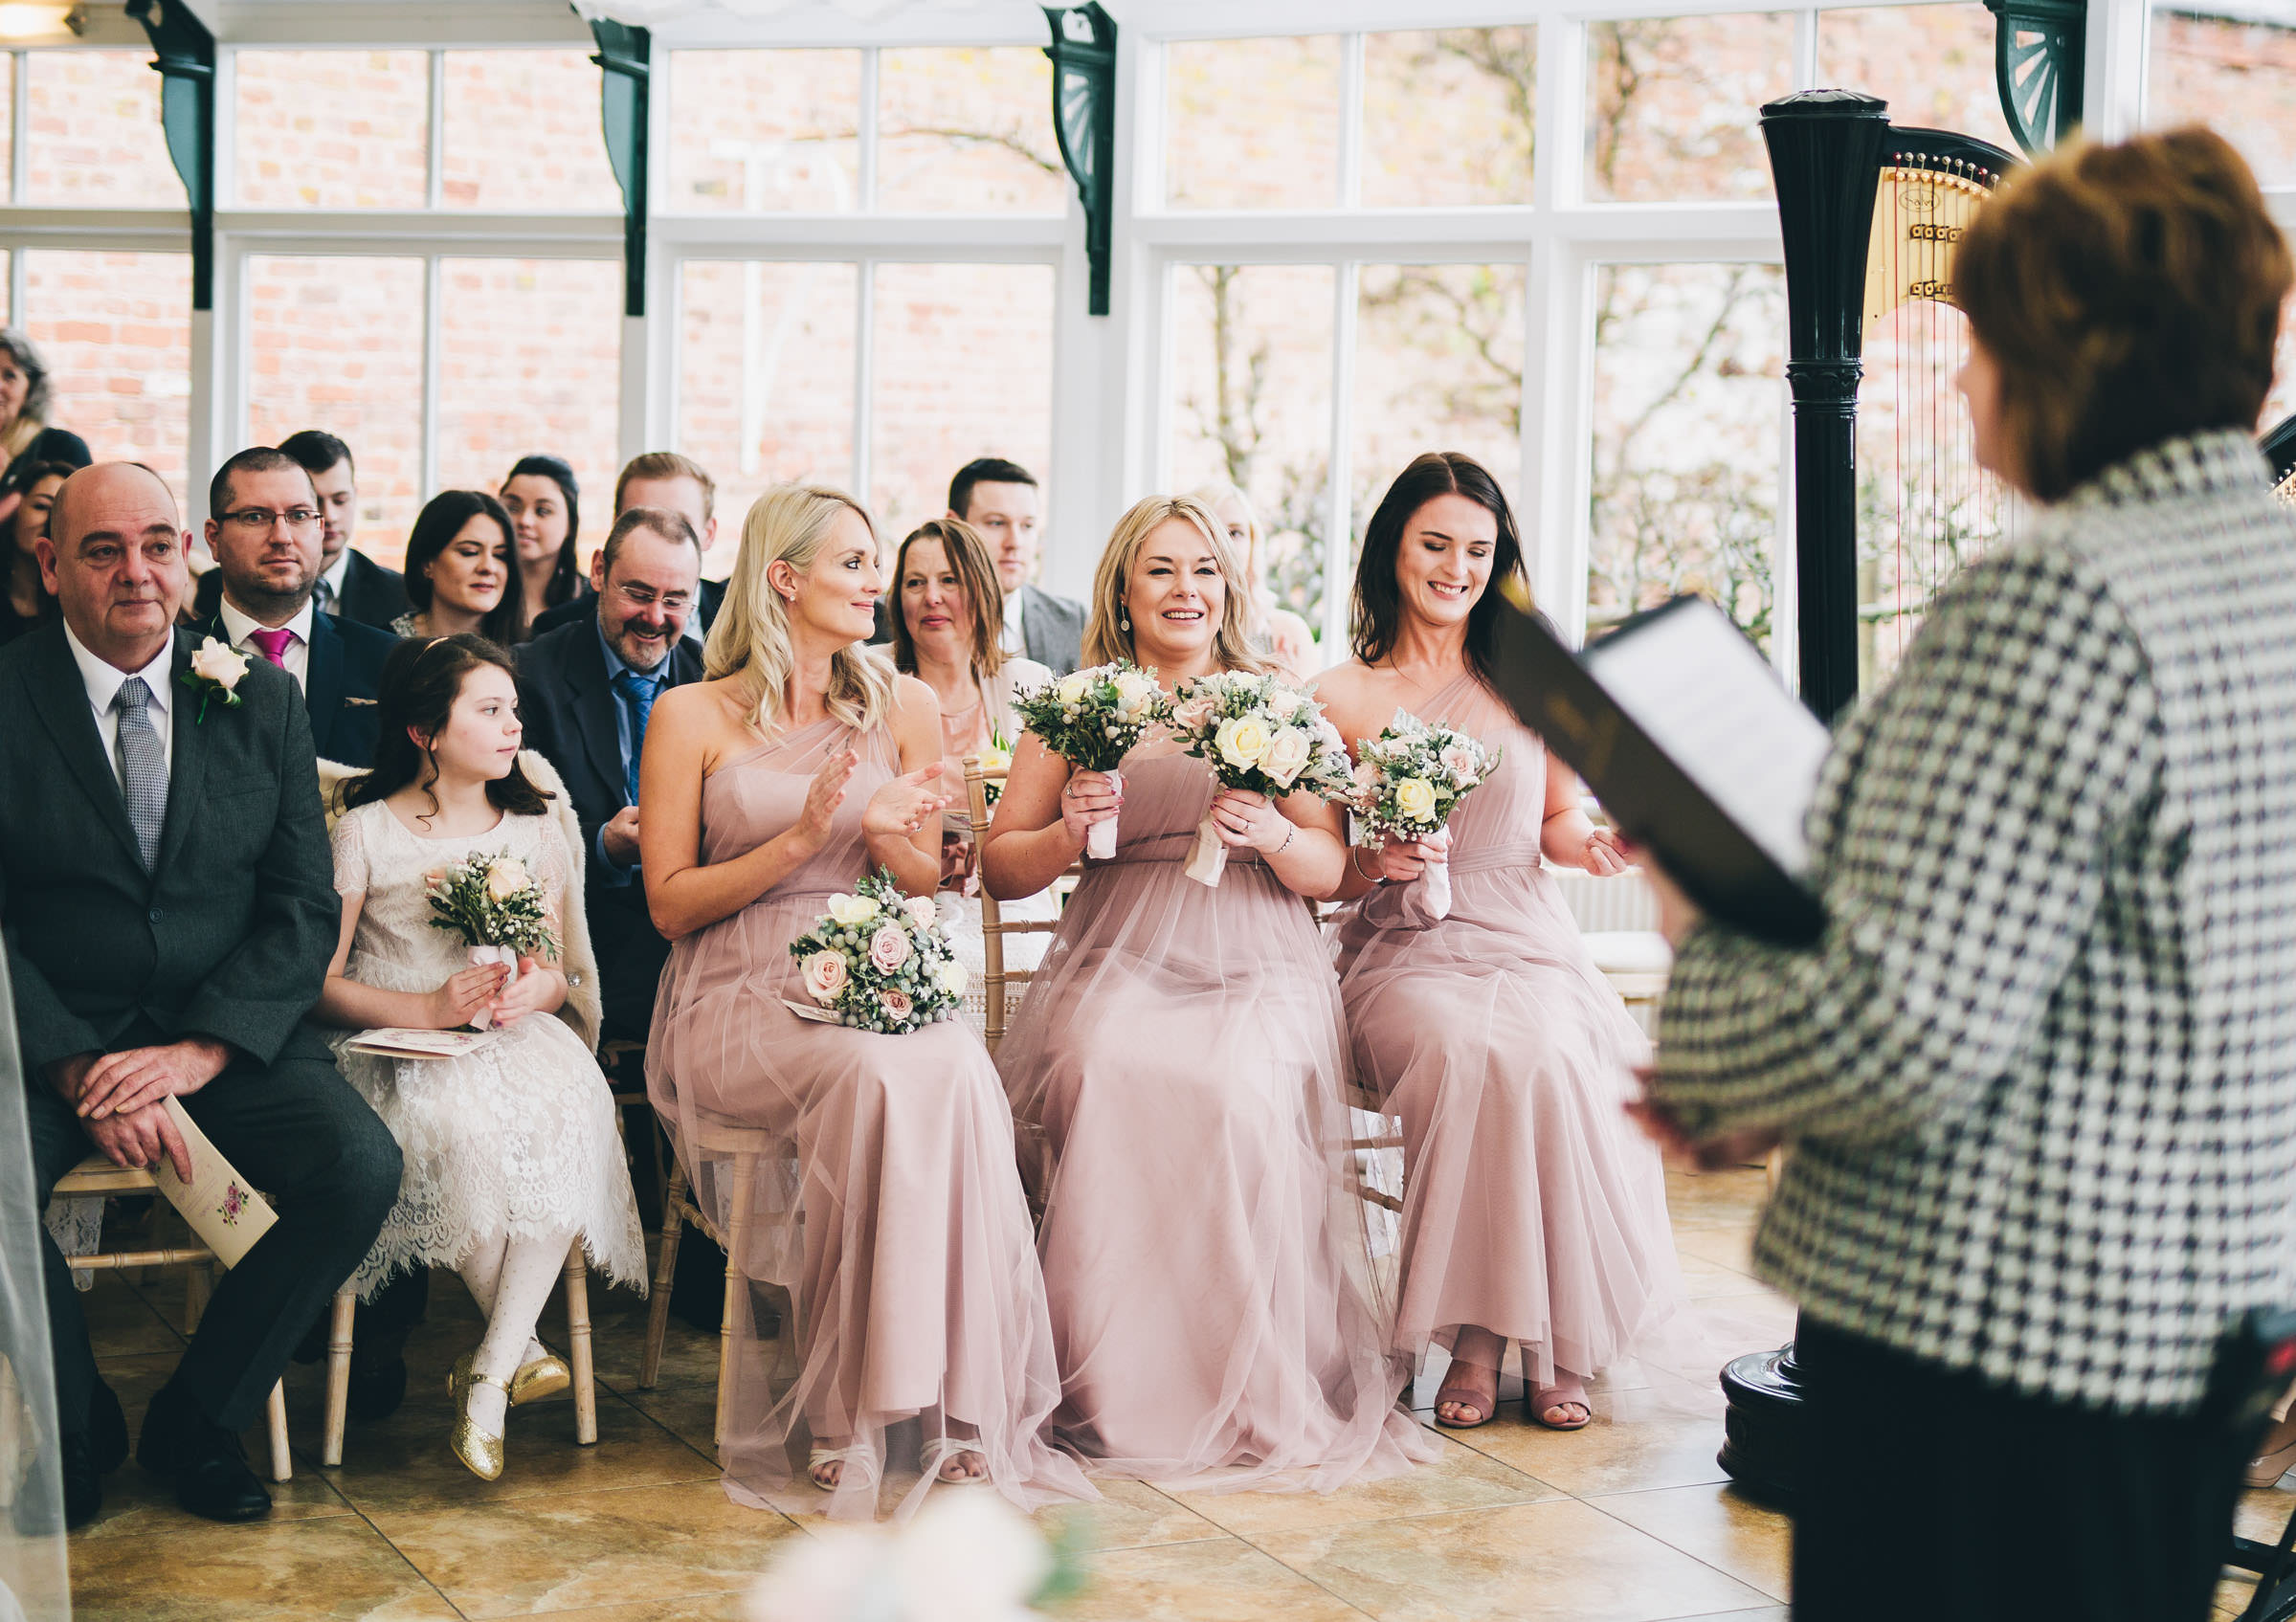 Happy bridesmaids at Combermere Abbey wedding ceremony